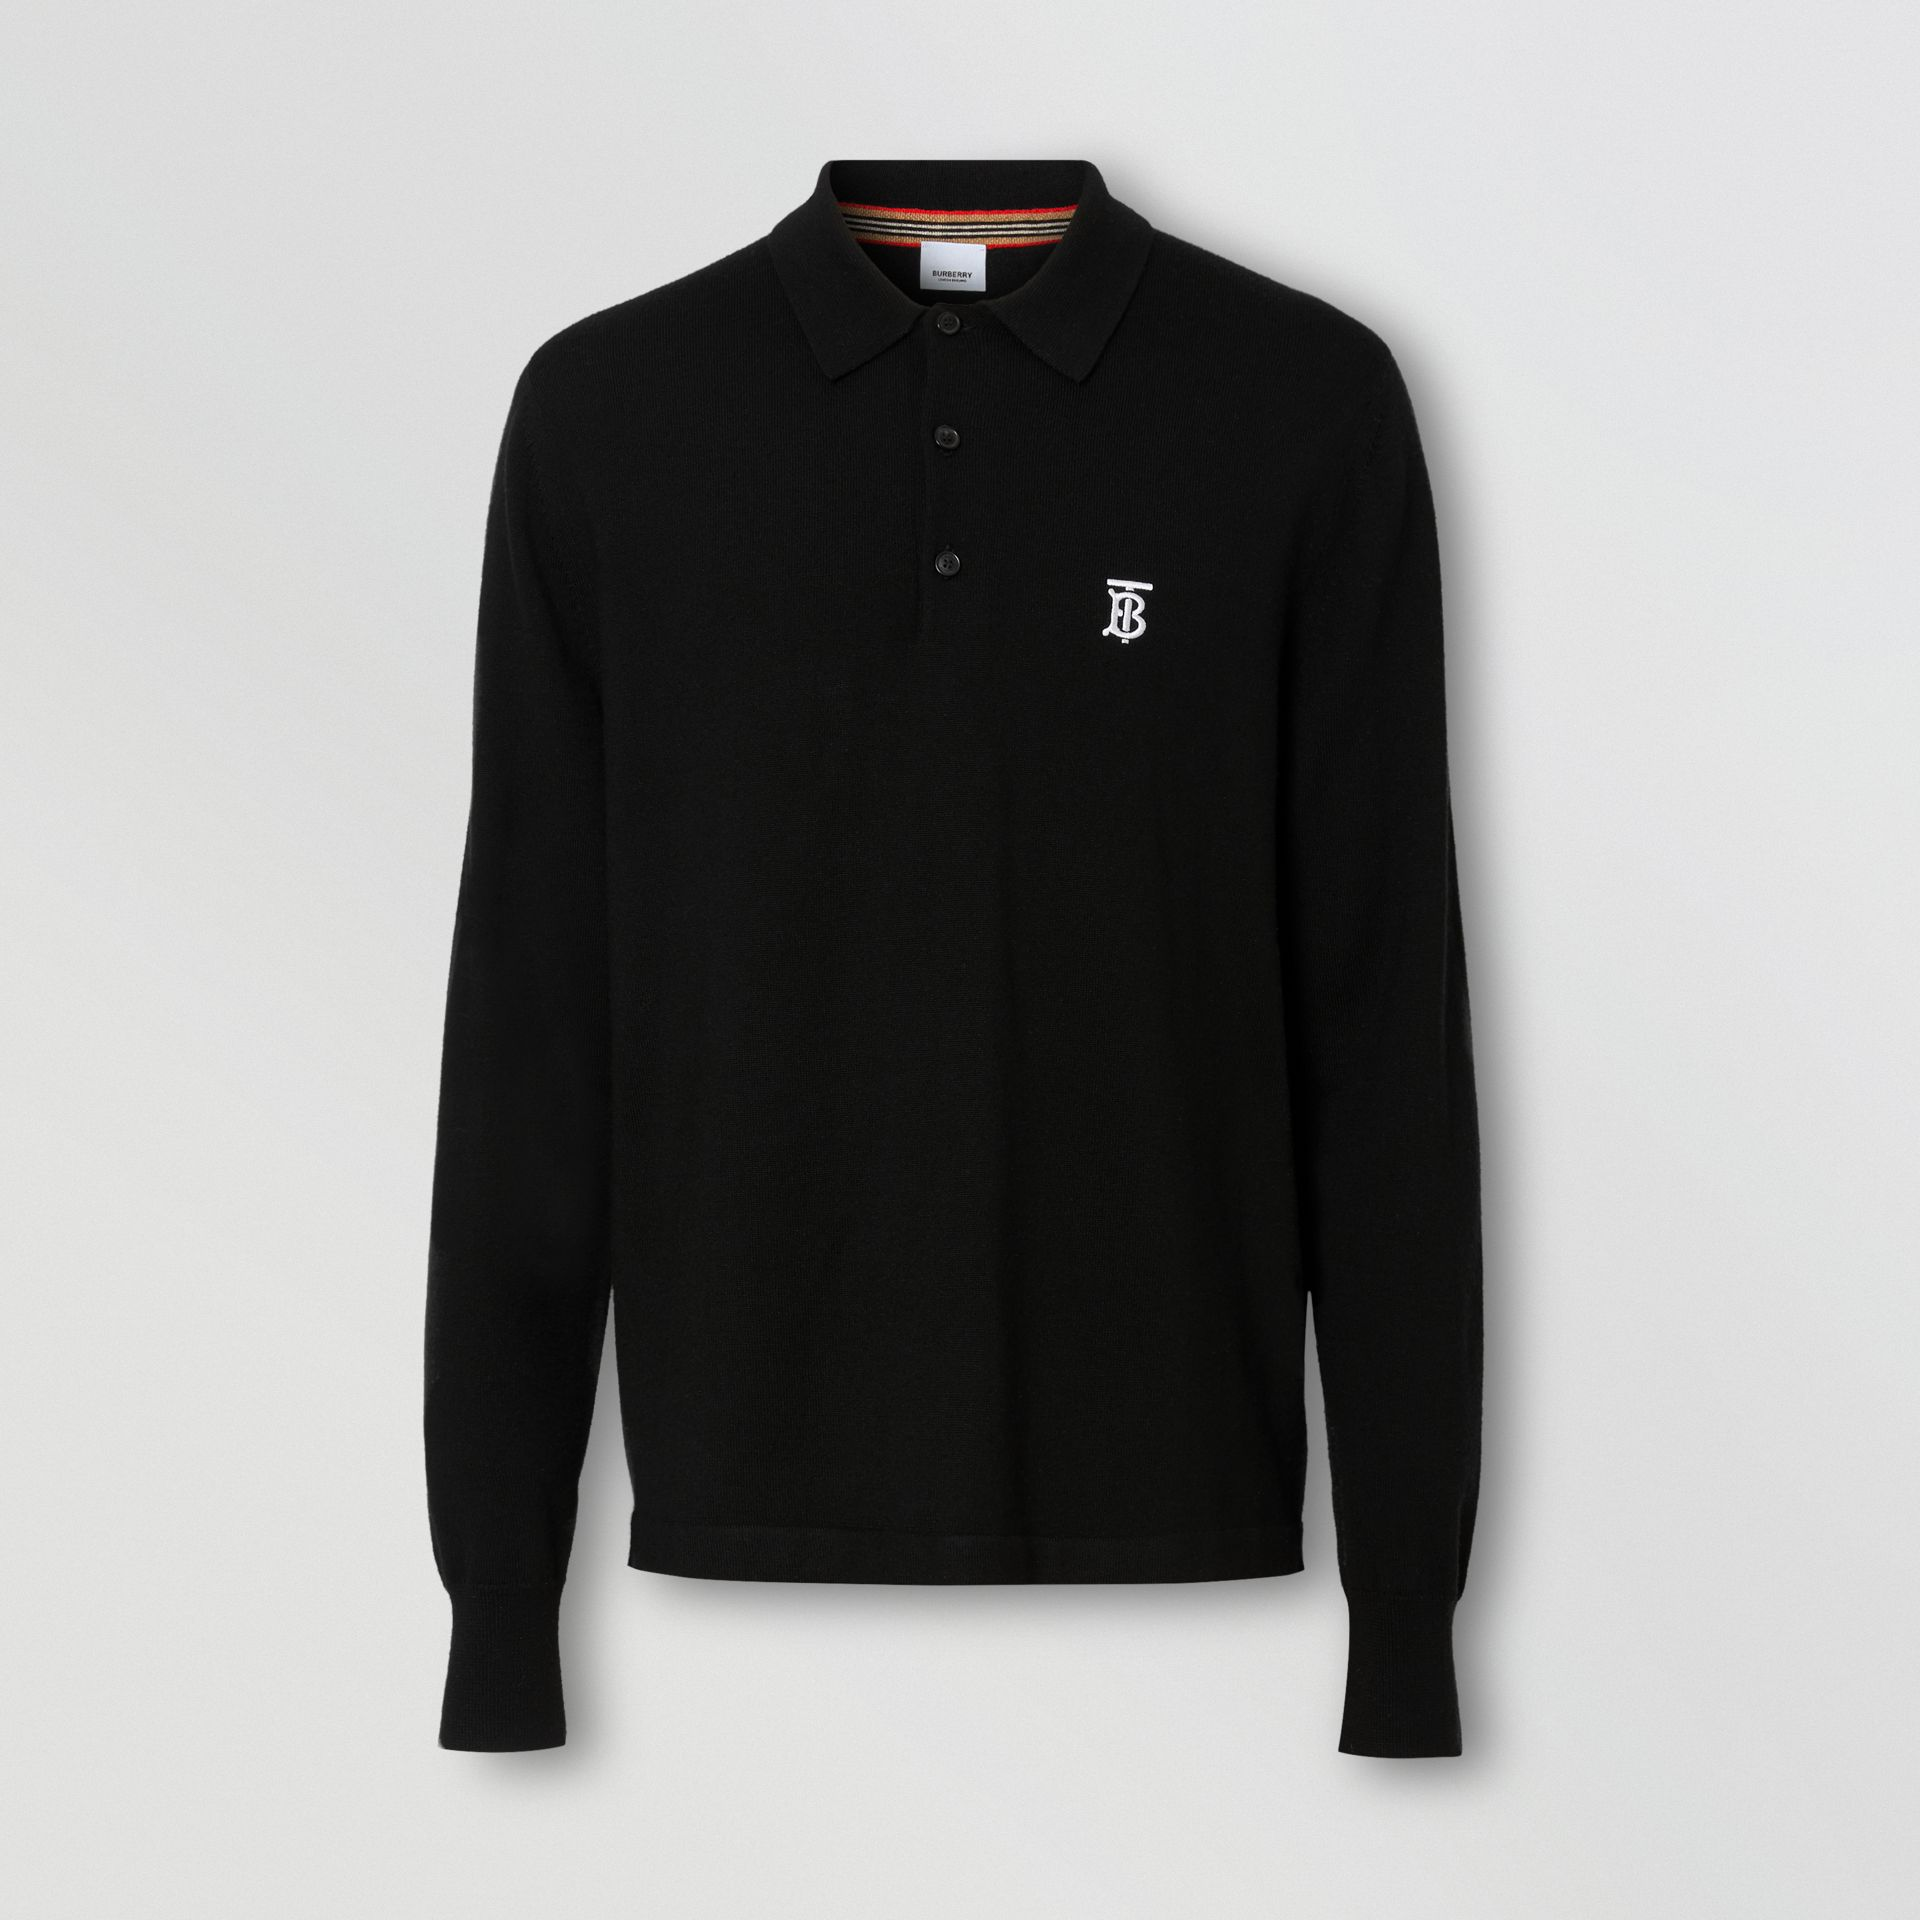 Long-sleeve Monogram Motif Merino Wool Polo Shirt in Black - Men | Burberry Singapore - gallery image 3